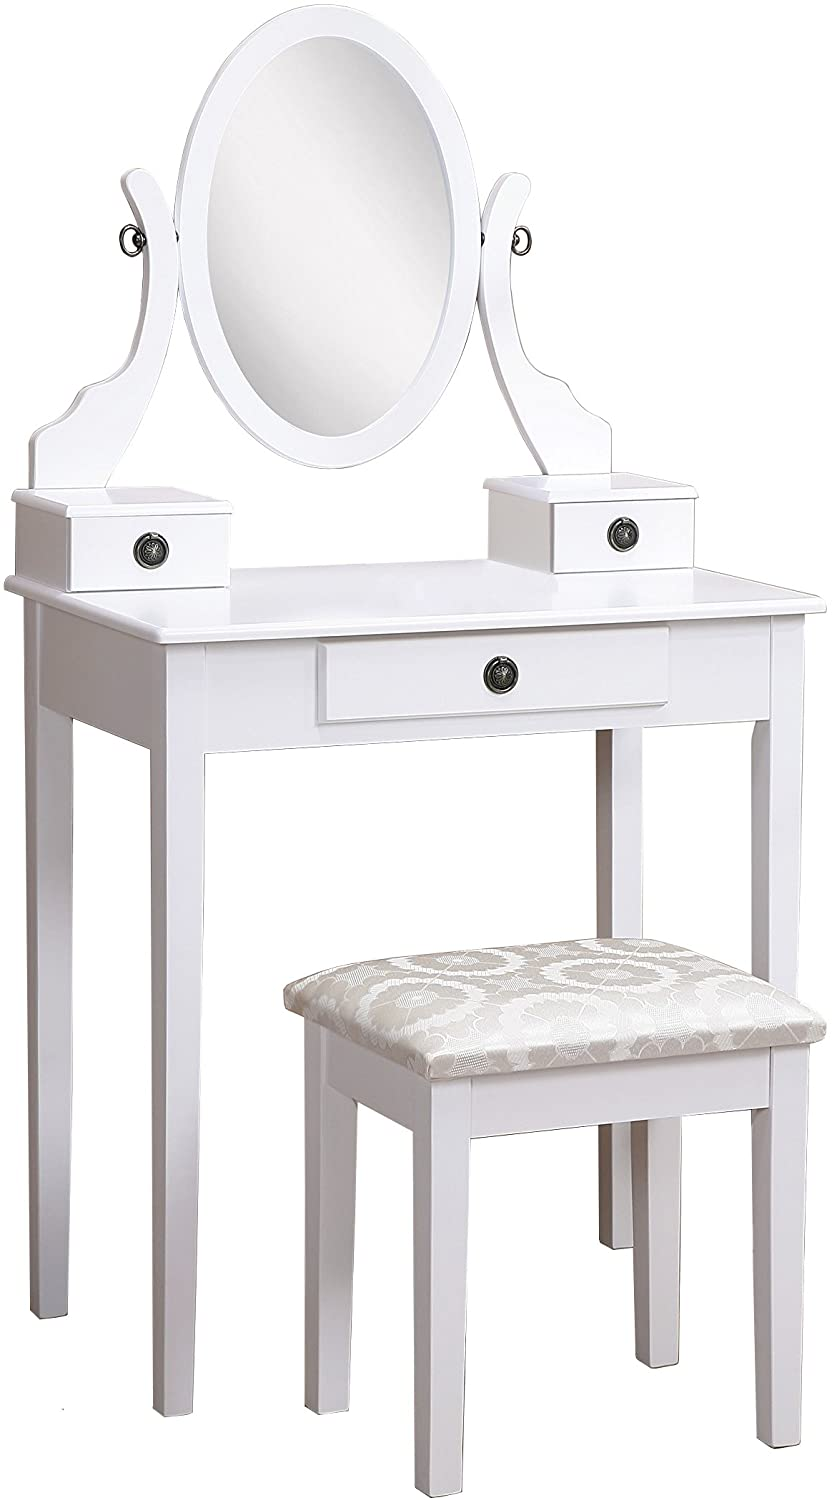 Roundhill Furniture Moniya White Wood Vanity Table